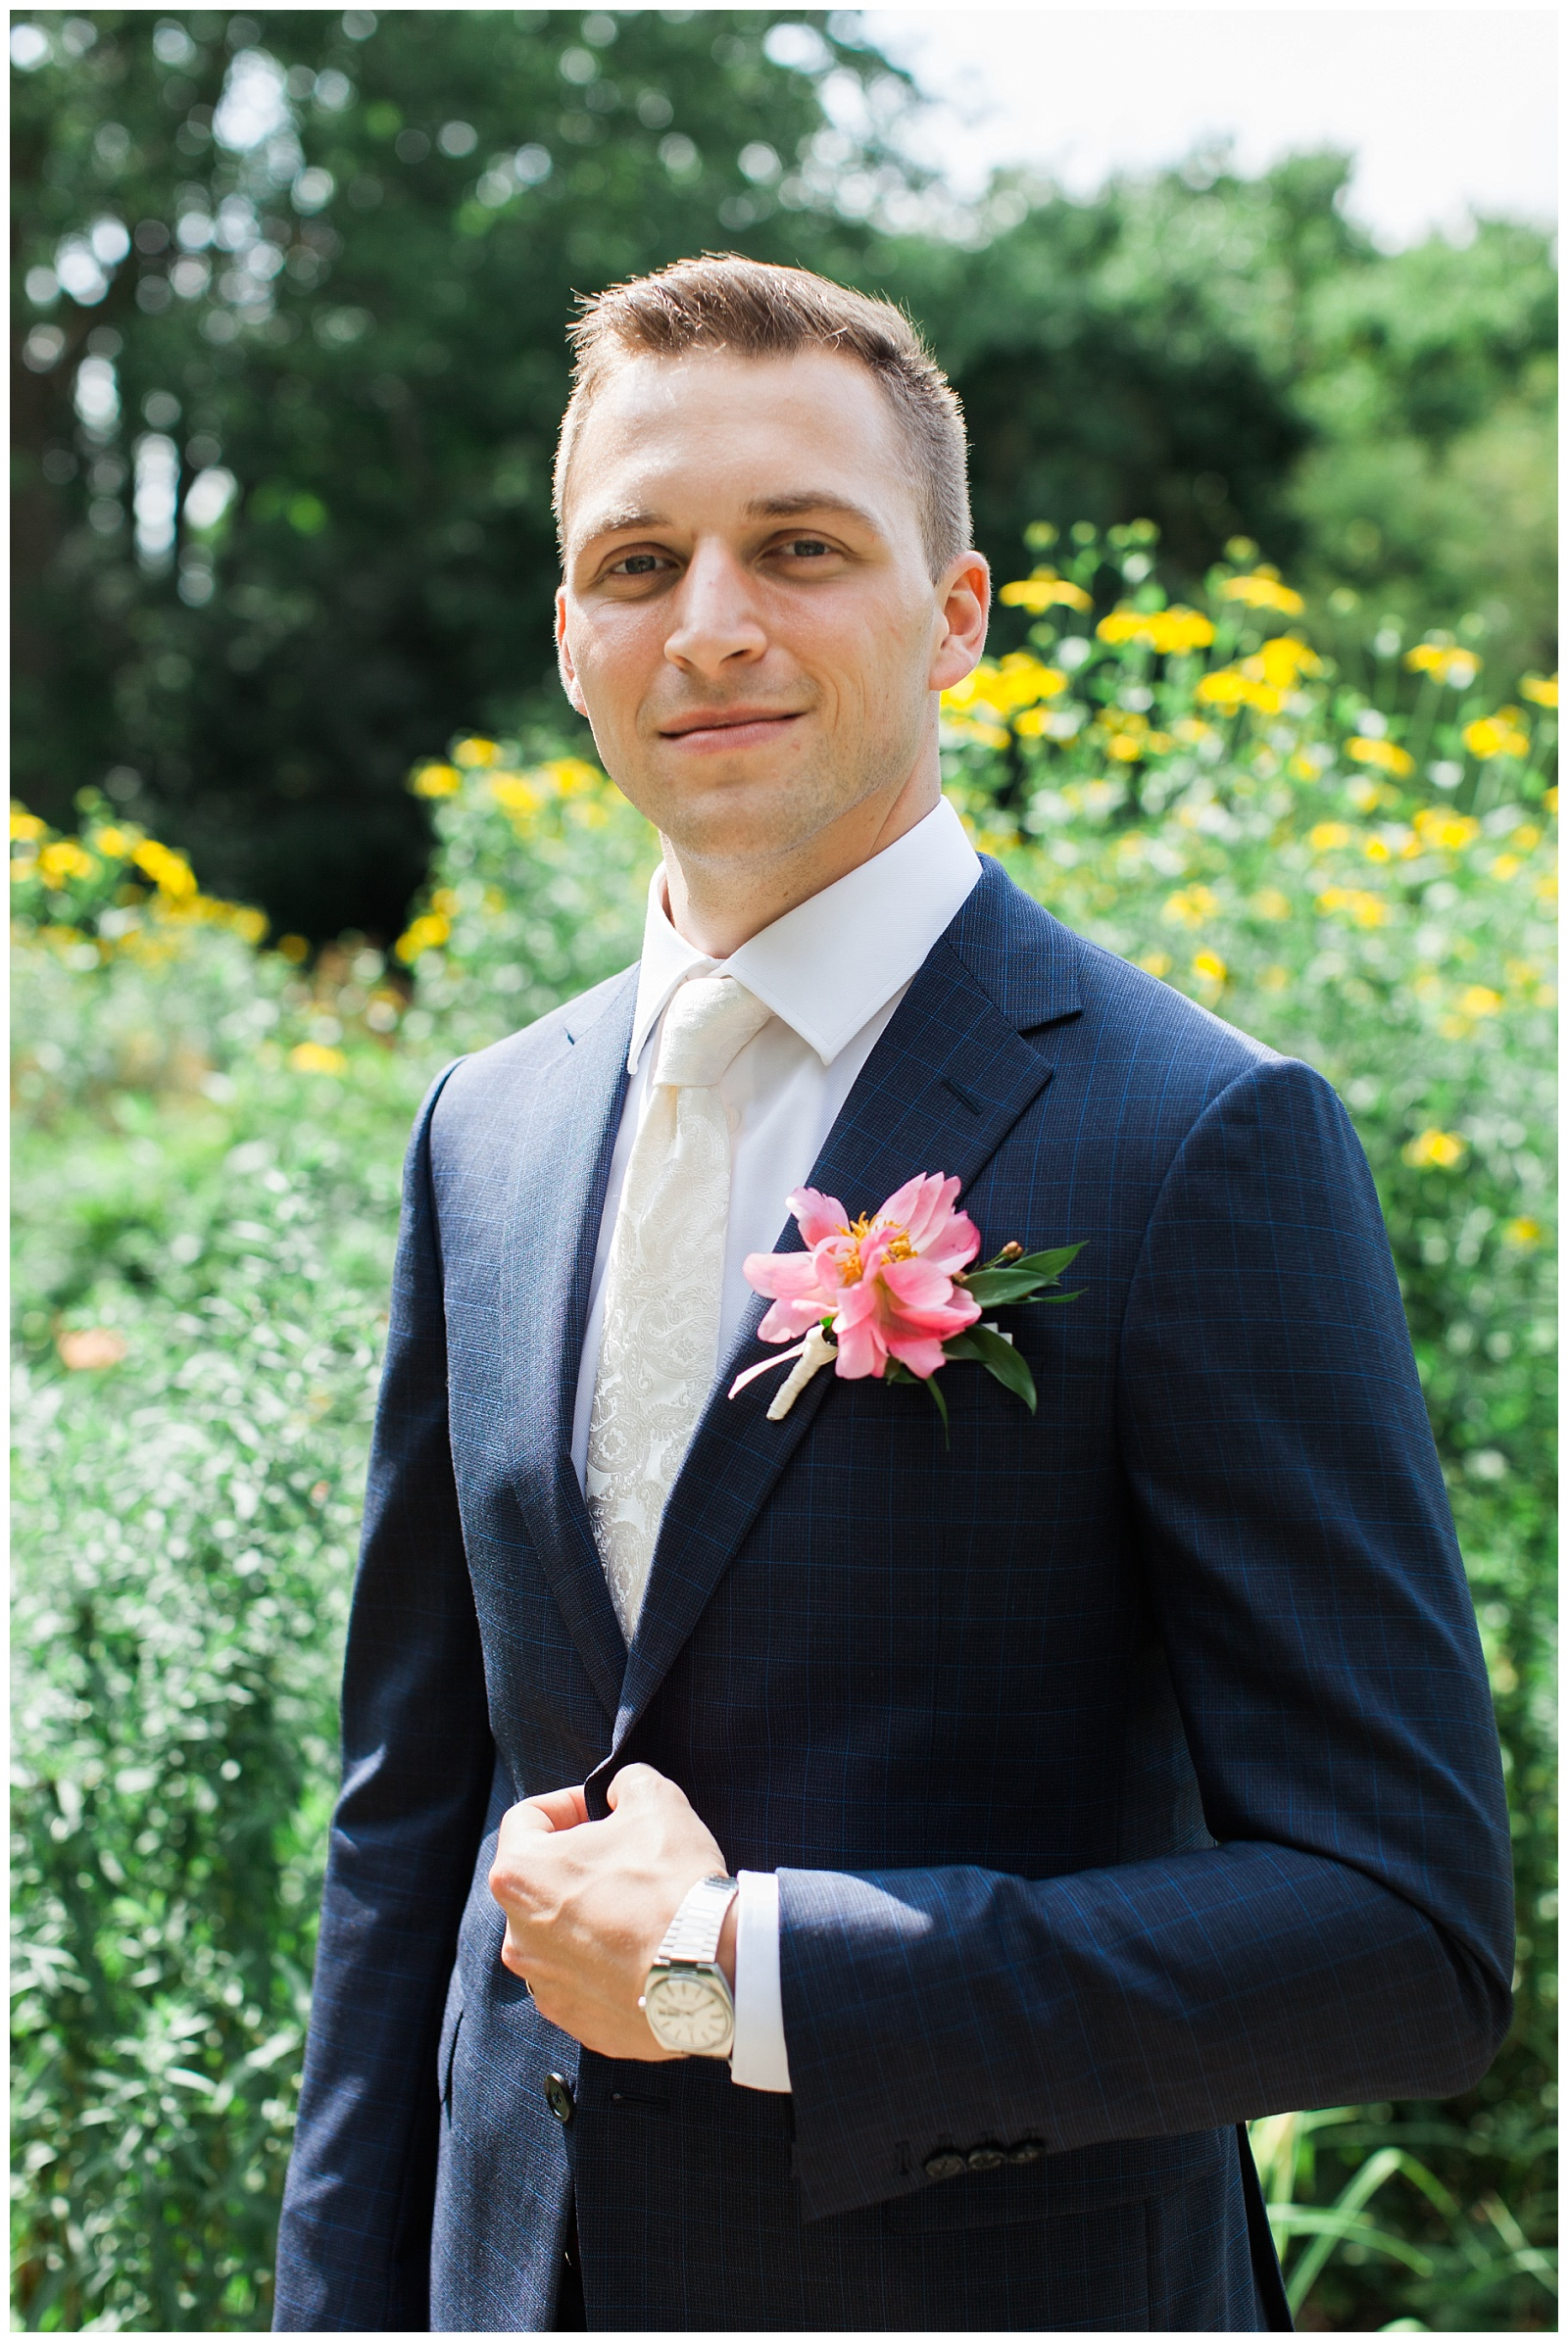 Handsome groom in navy pinstripe suit with watch and pink boutonniere at Guelph Ontario Wedding | Ontario Wedding Photographer | Toronto Wedding Photographer | 3photography